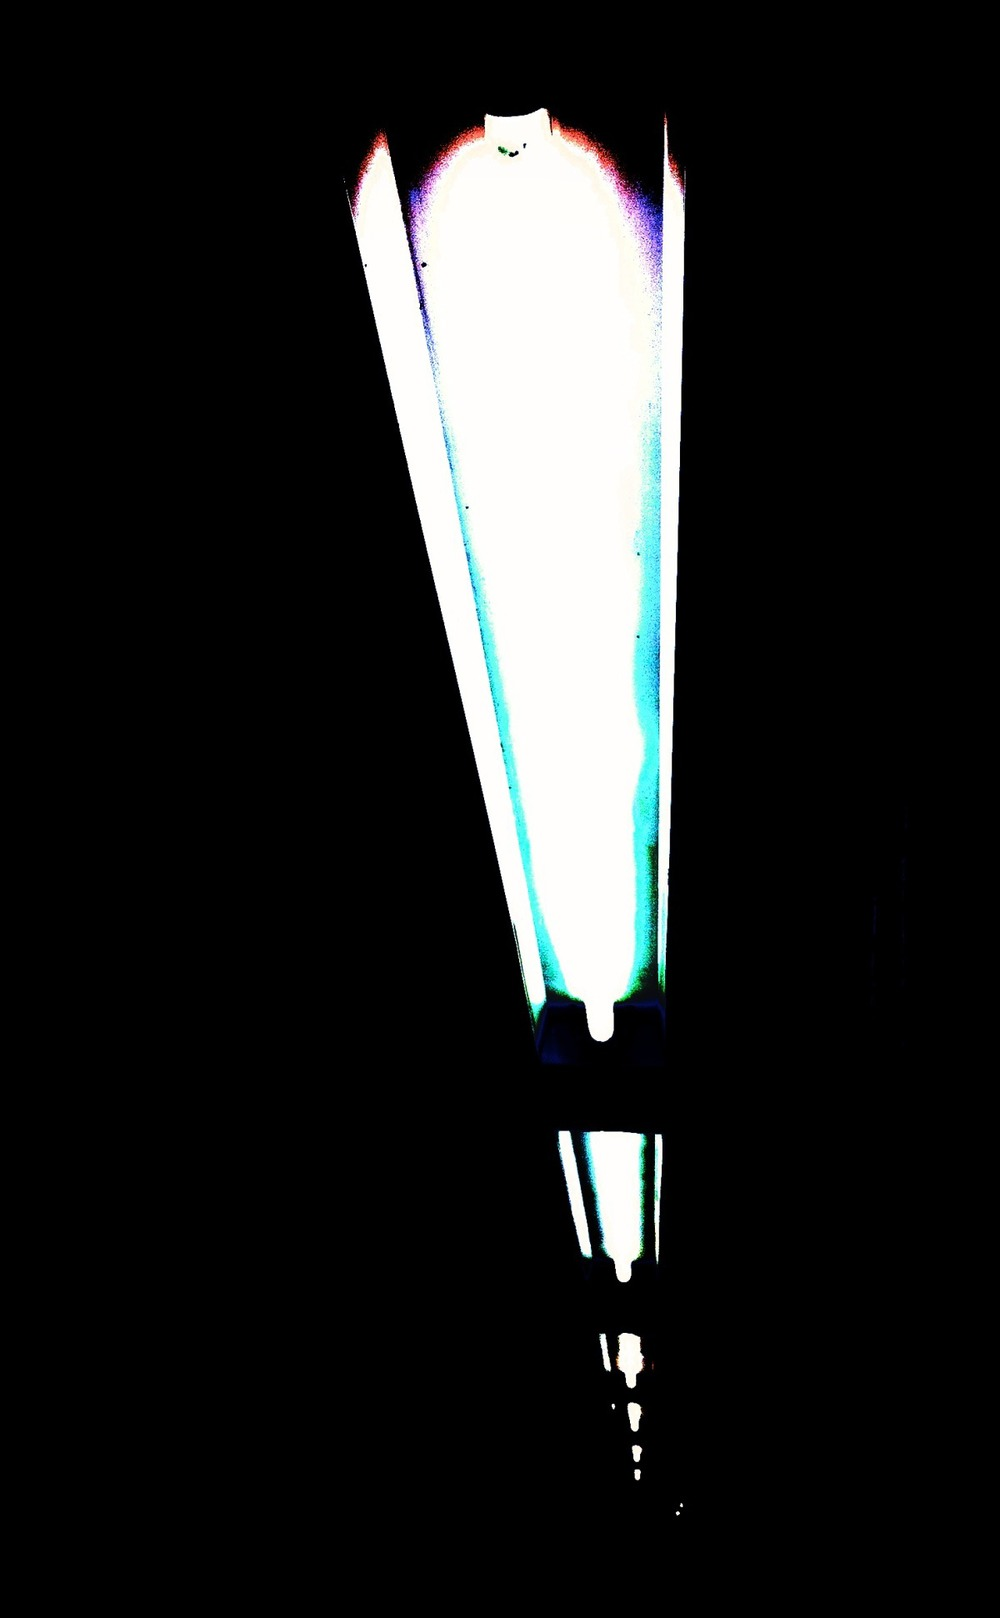 lampshade 8.23 upload 4.jpg